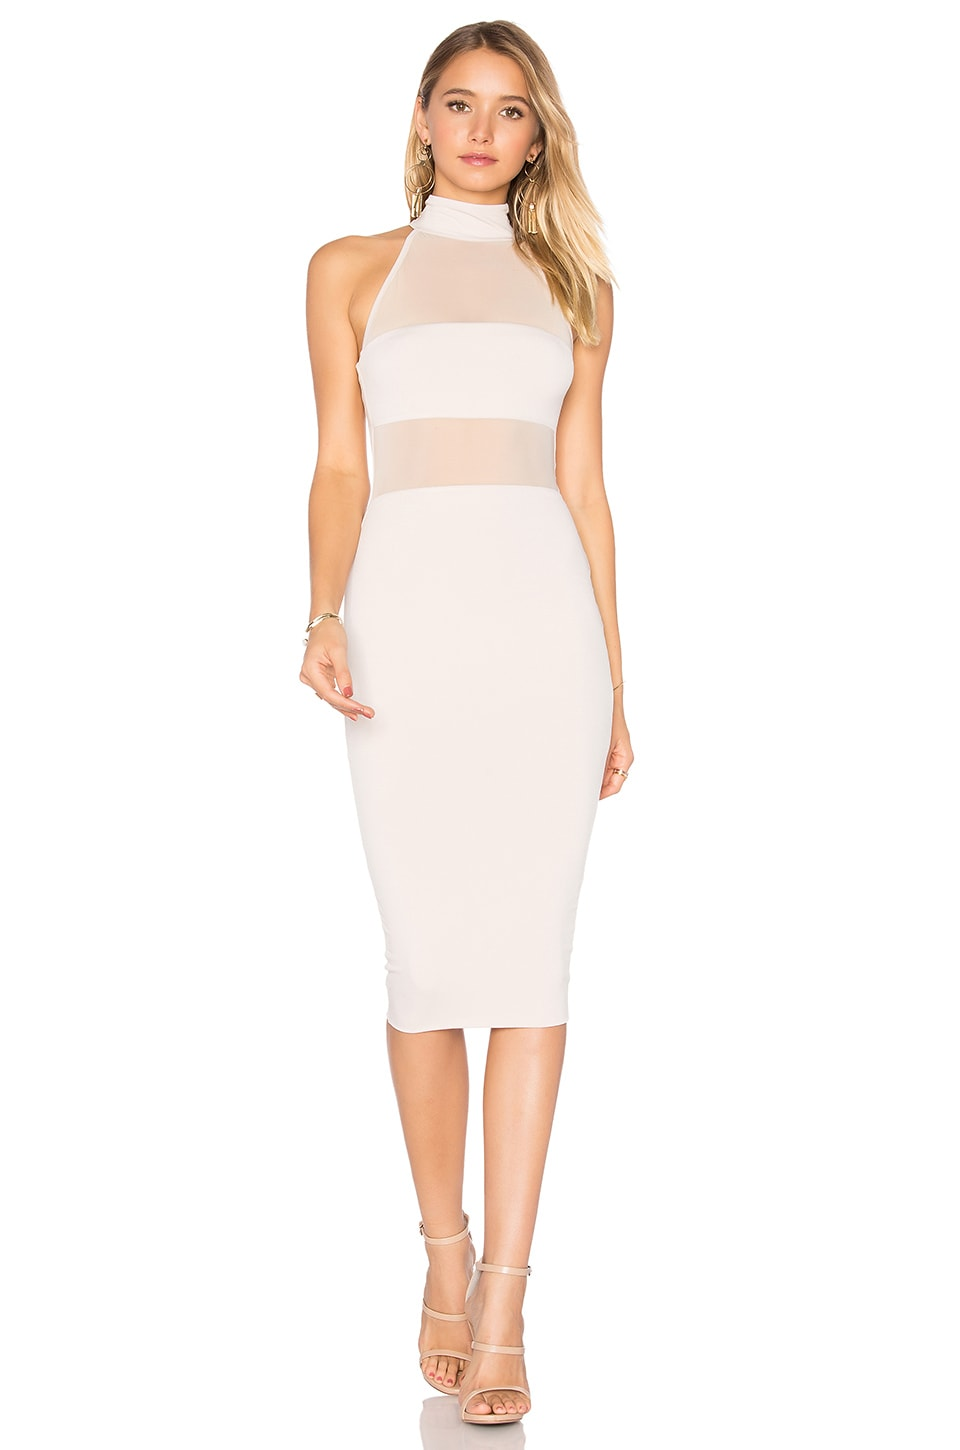 Nookie Princess Mesh Midi Dress in Nude